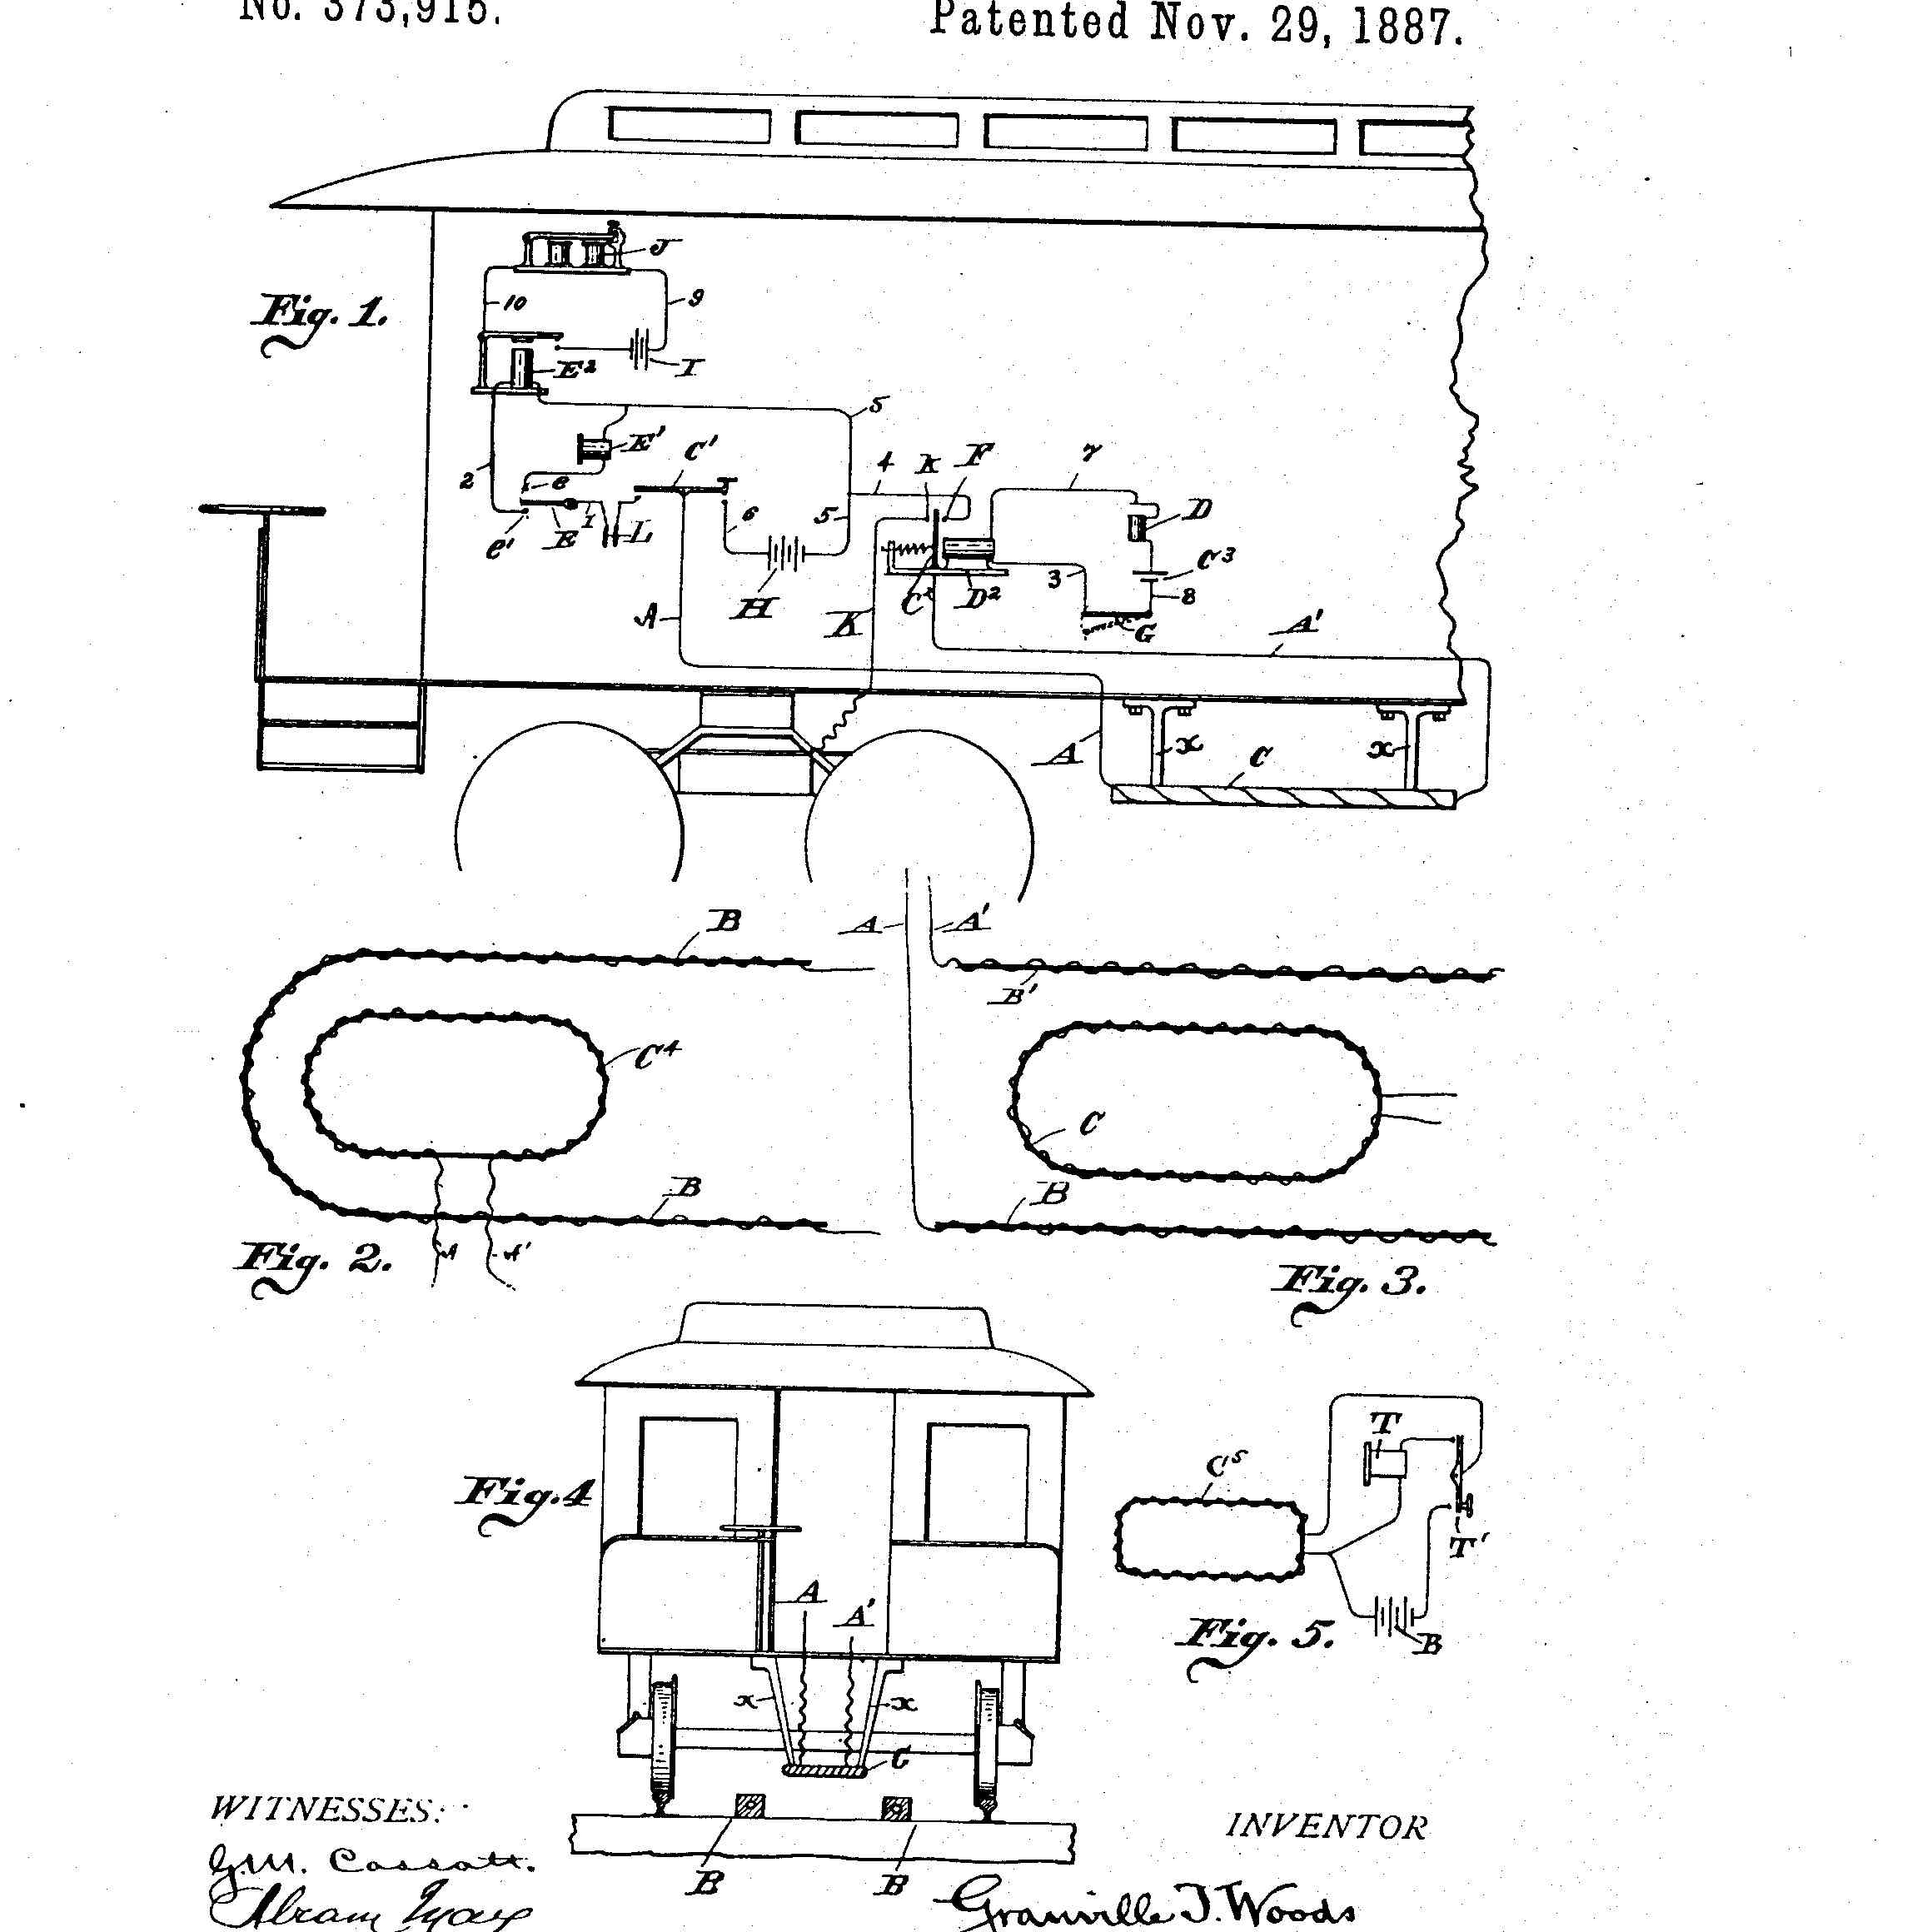 Granville T. Woods' invention for Induction Telegraph System was patented in 1887